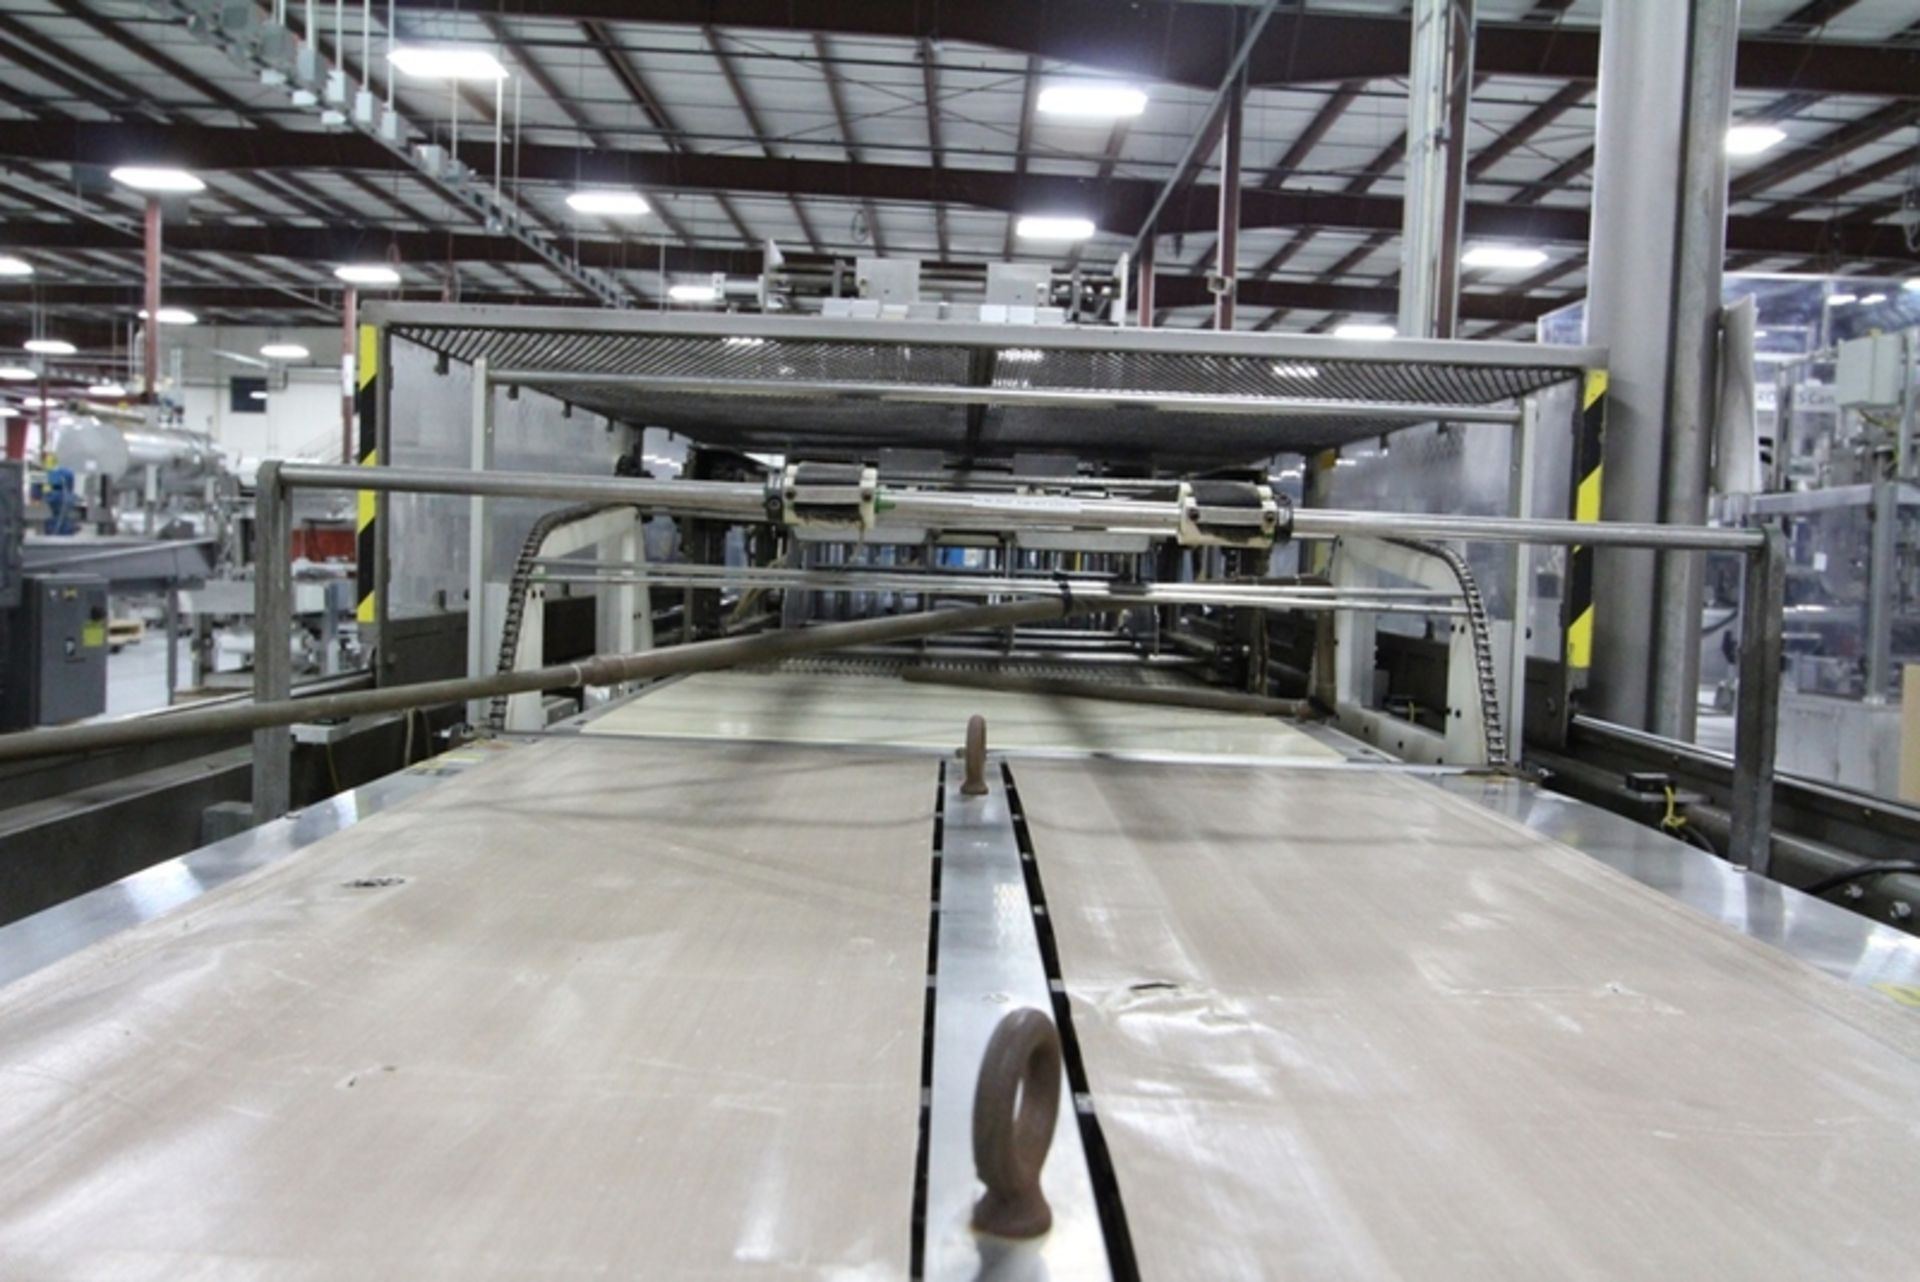 Arpac Shrink Wrapper Bundler with Heat Tunnel - Image 8 of 9